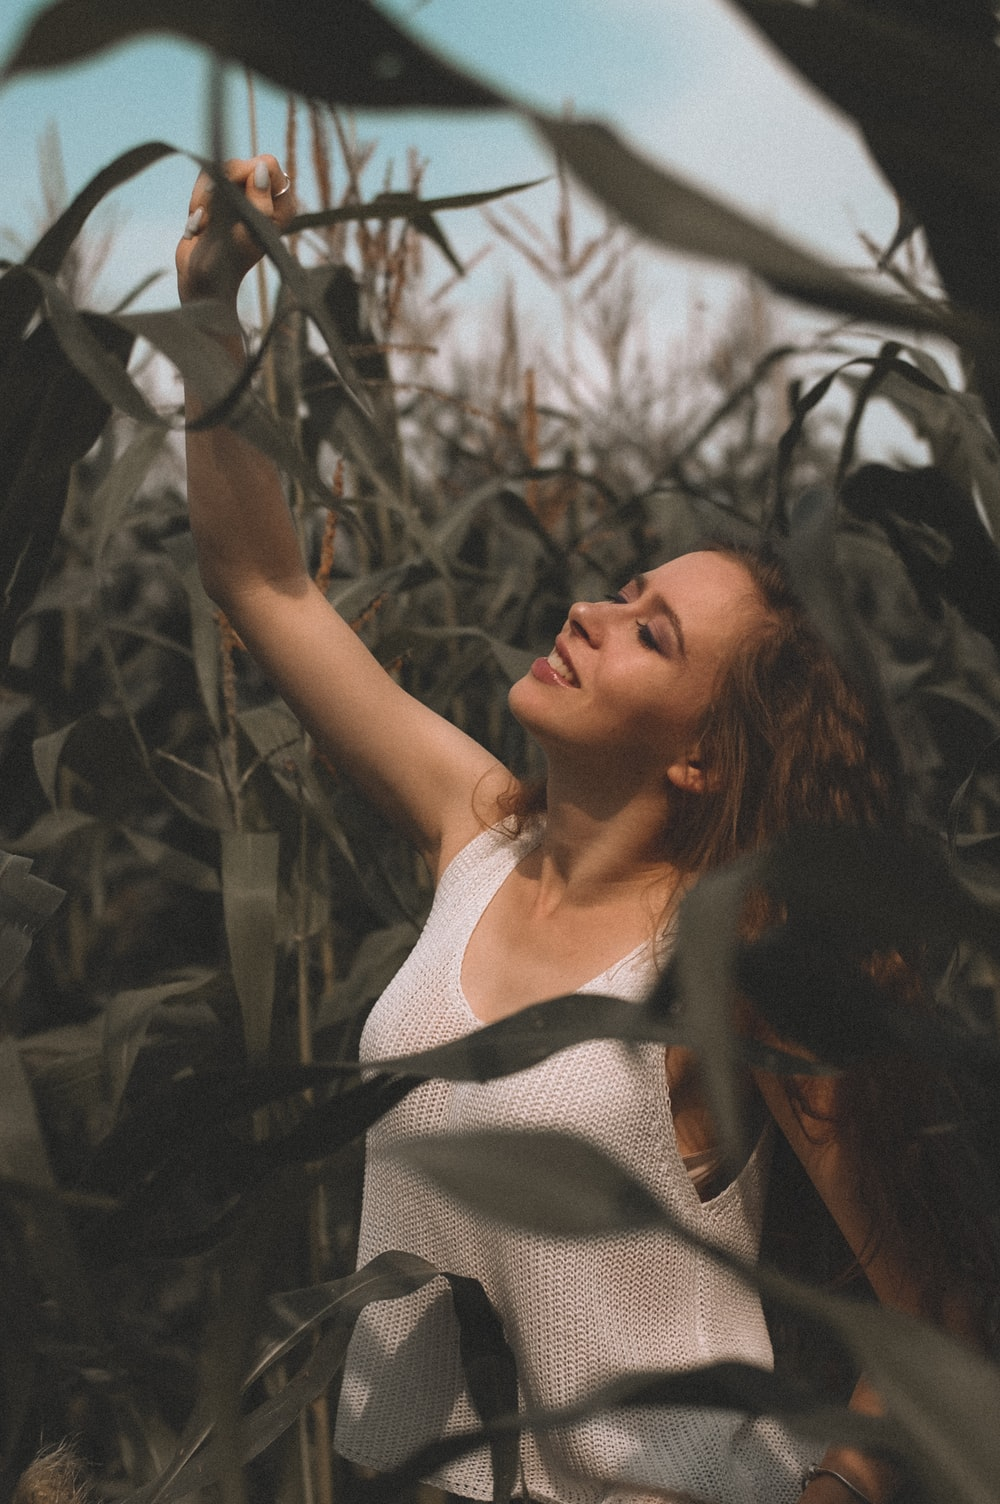 woman surrounded by corn plants